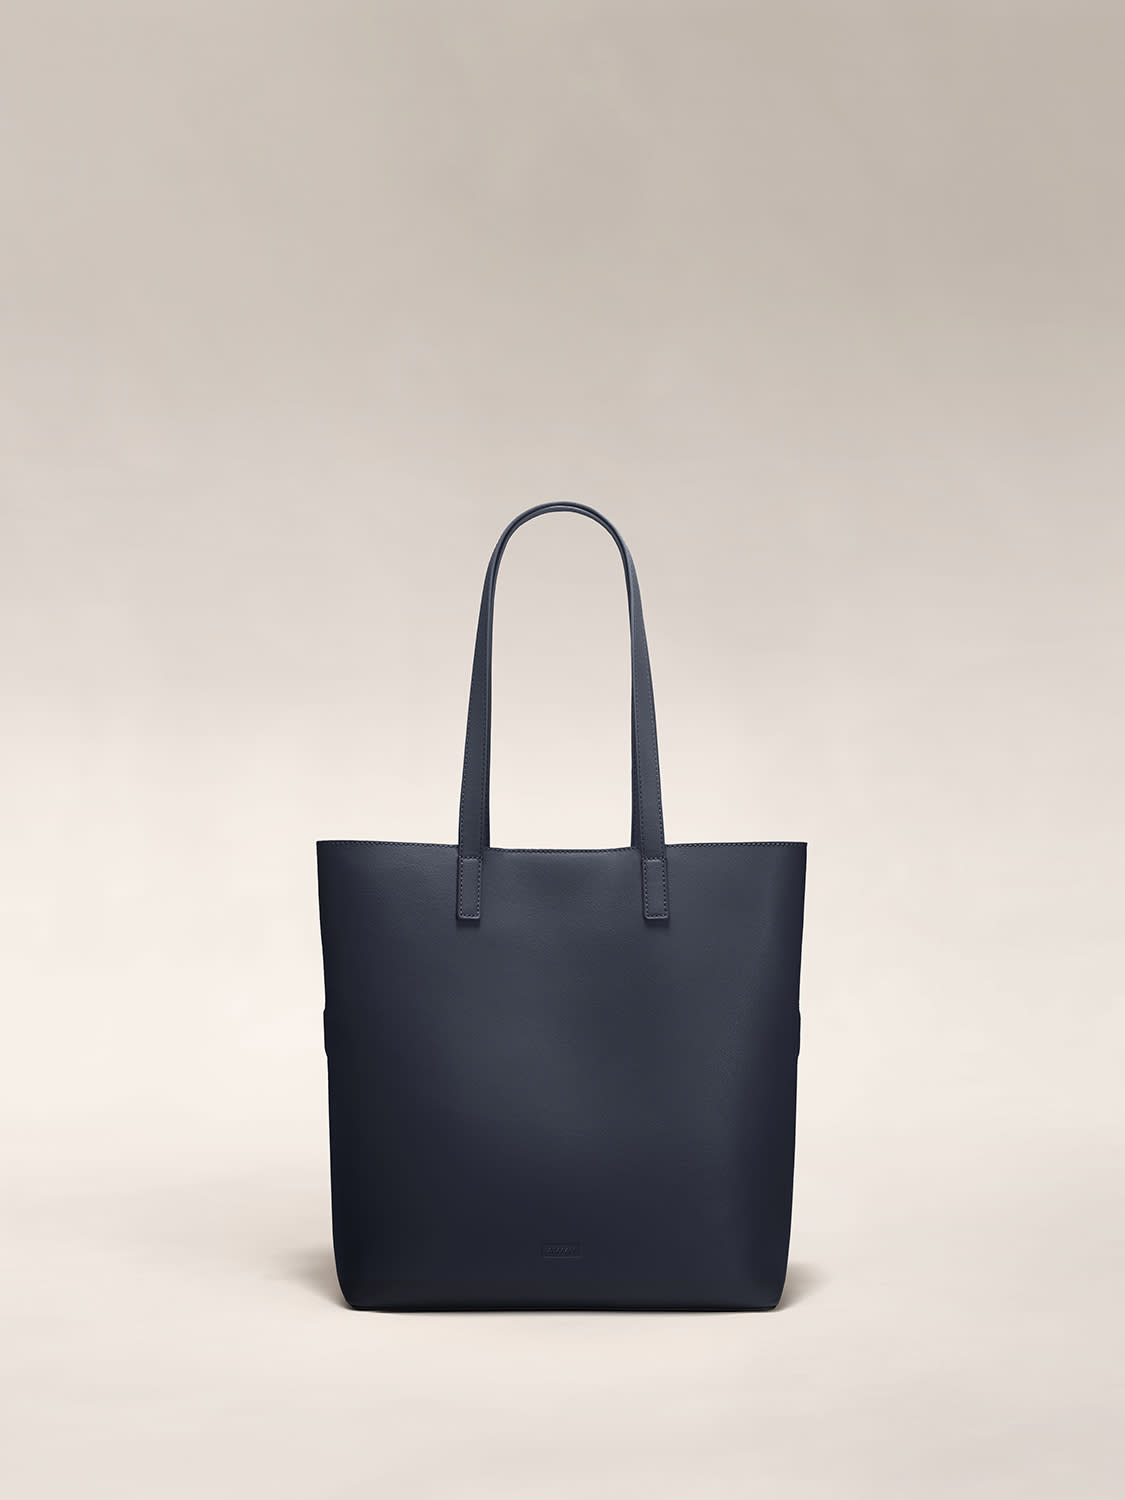 The Longitude Tote in Navy leather